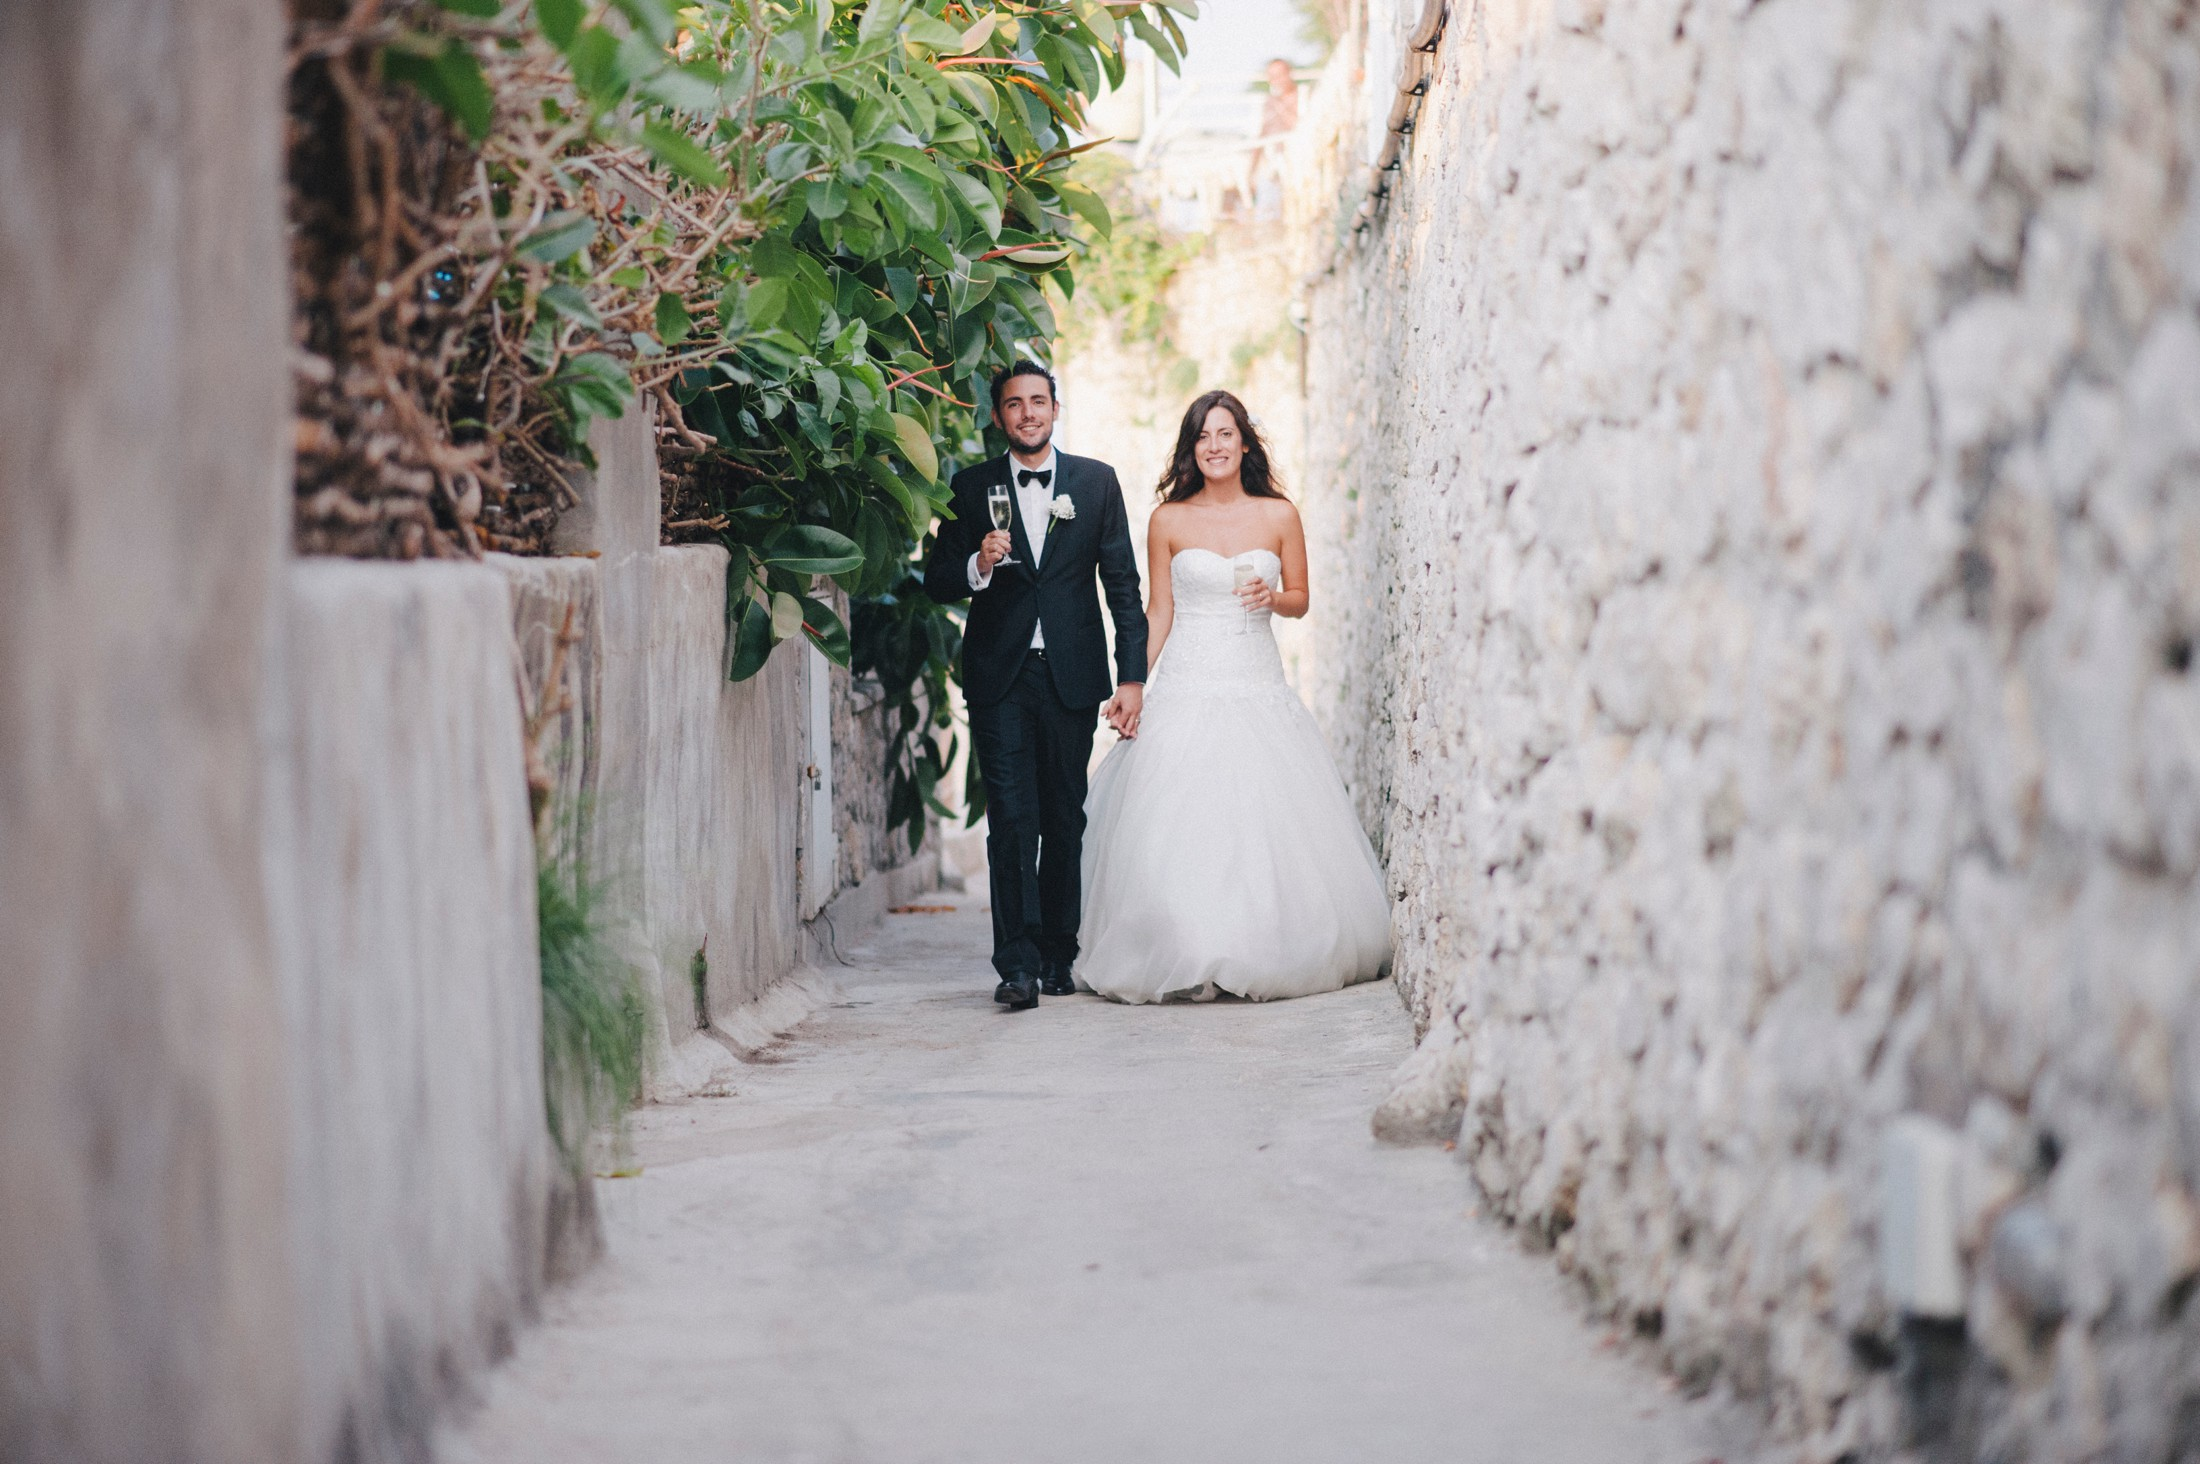 the bride and the groom walking together in capri